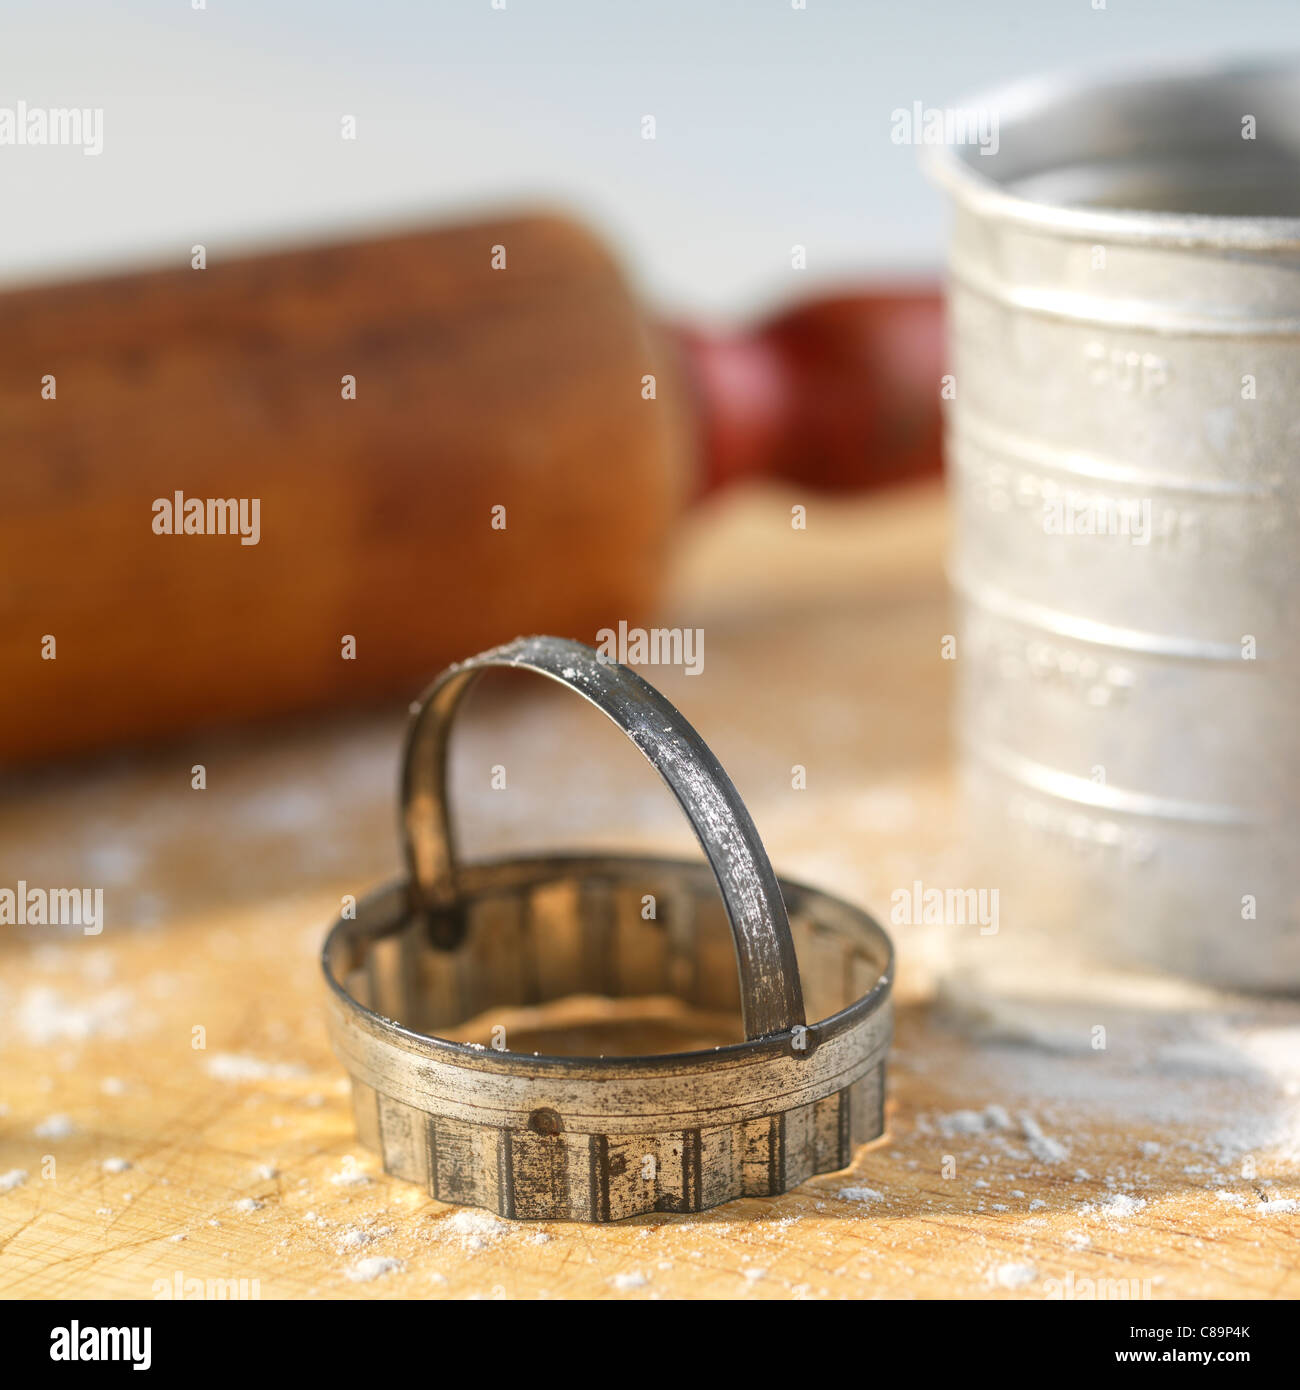 Cookie cutter - Stock Image